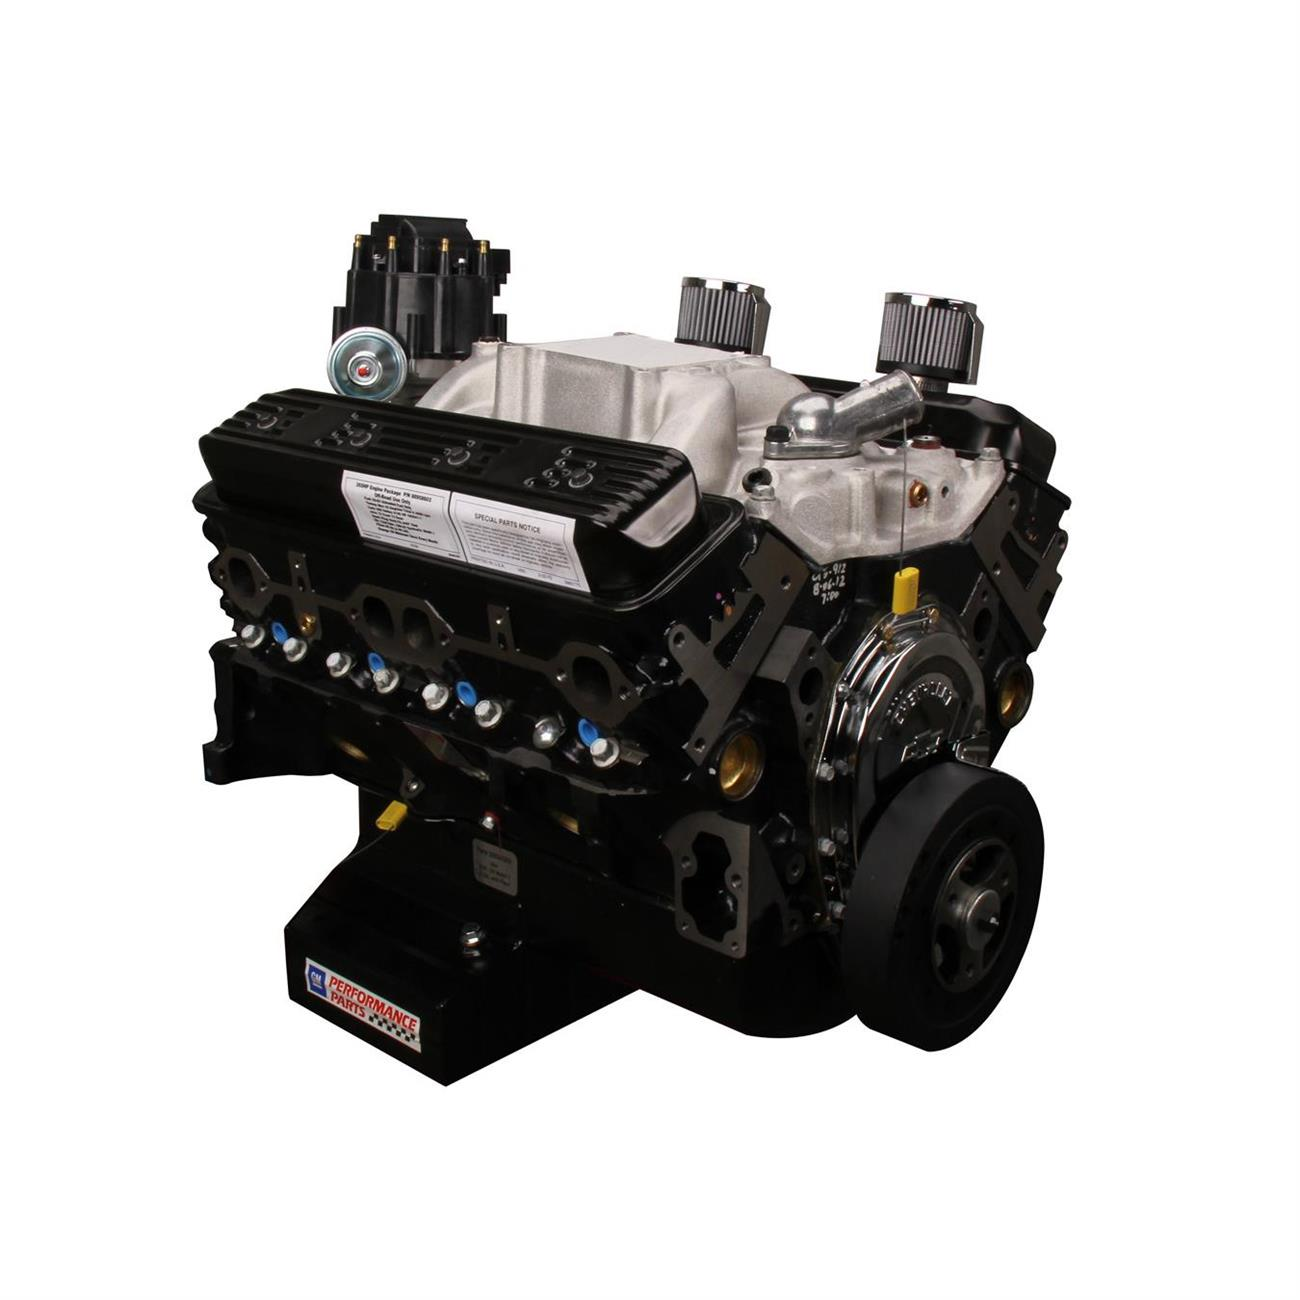 All Chevy 305 chevy engine for sale : Crate Engines/Motors - Free Shipping @ Speedway Motors